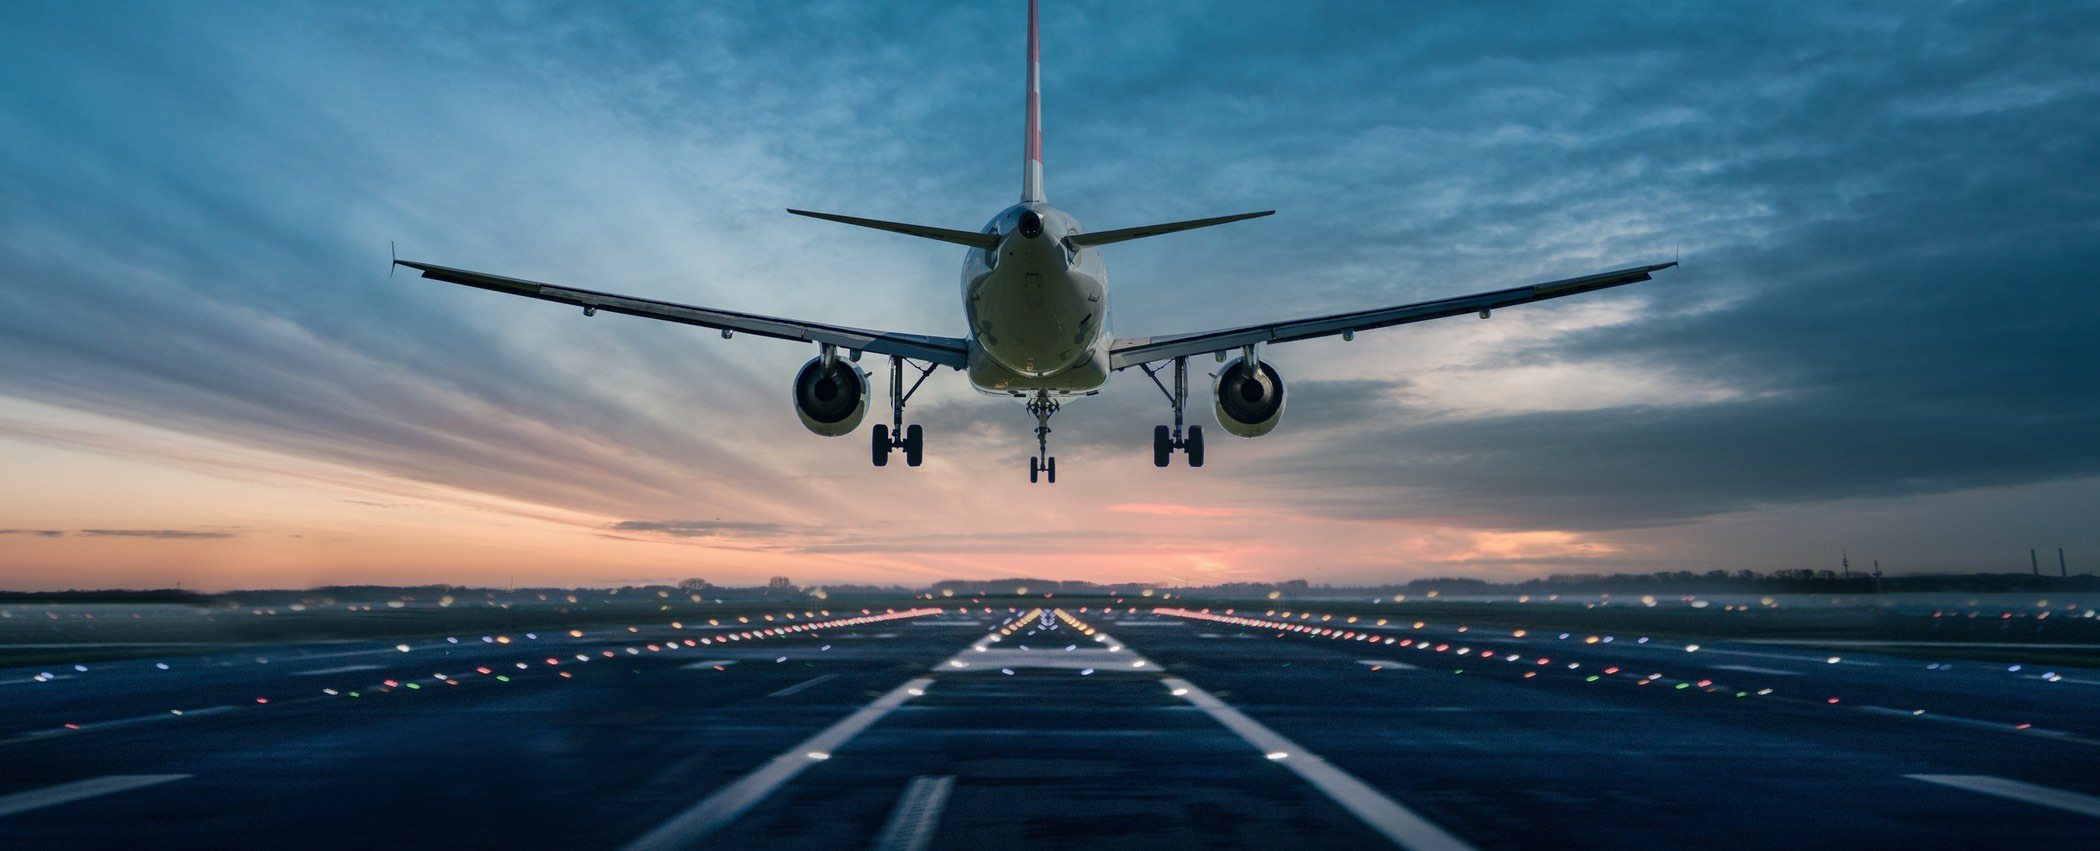 Airplane over the runway